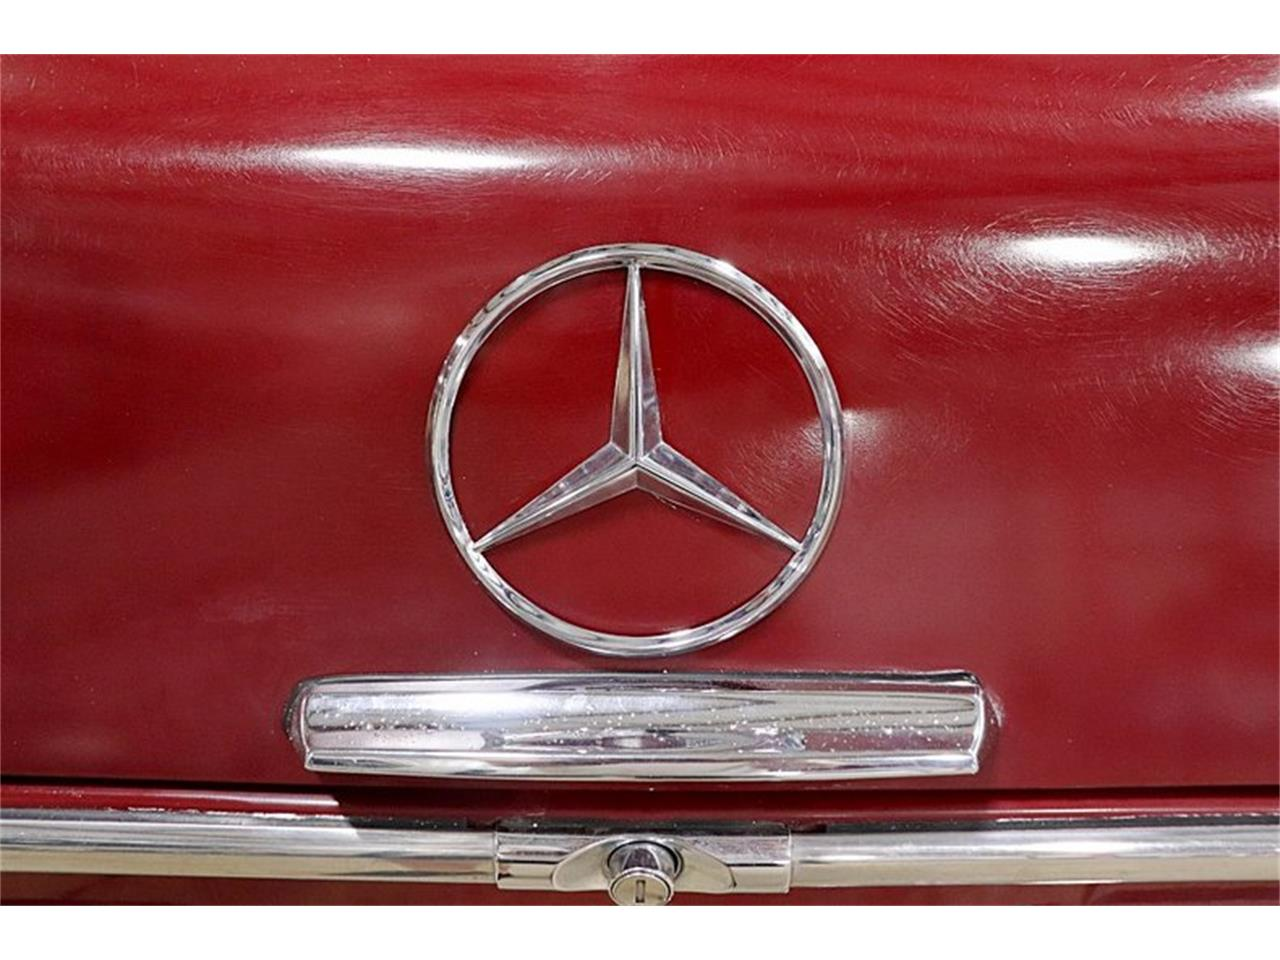 1971 Mercedes-Benz 250C for sale in Kentwood, MI – photo 46